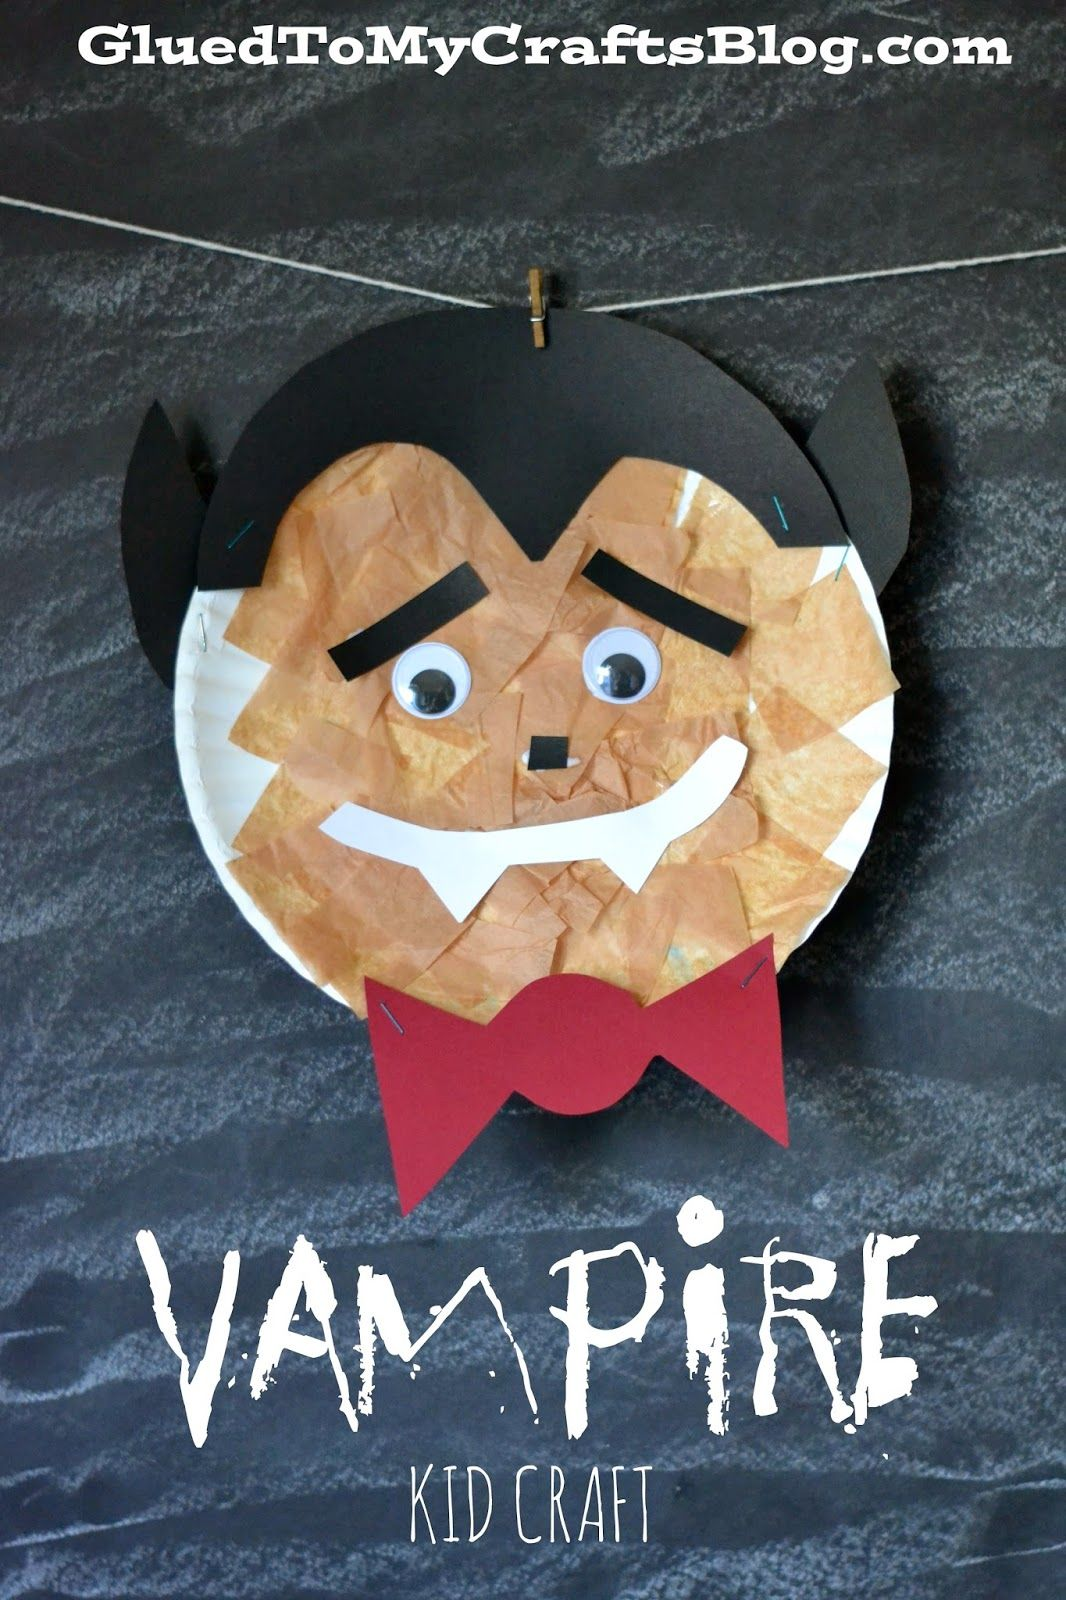 Paper Plate Vampire {Kid Craft} Halloween crafts for